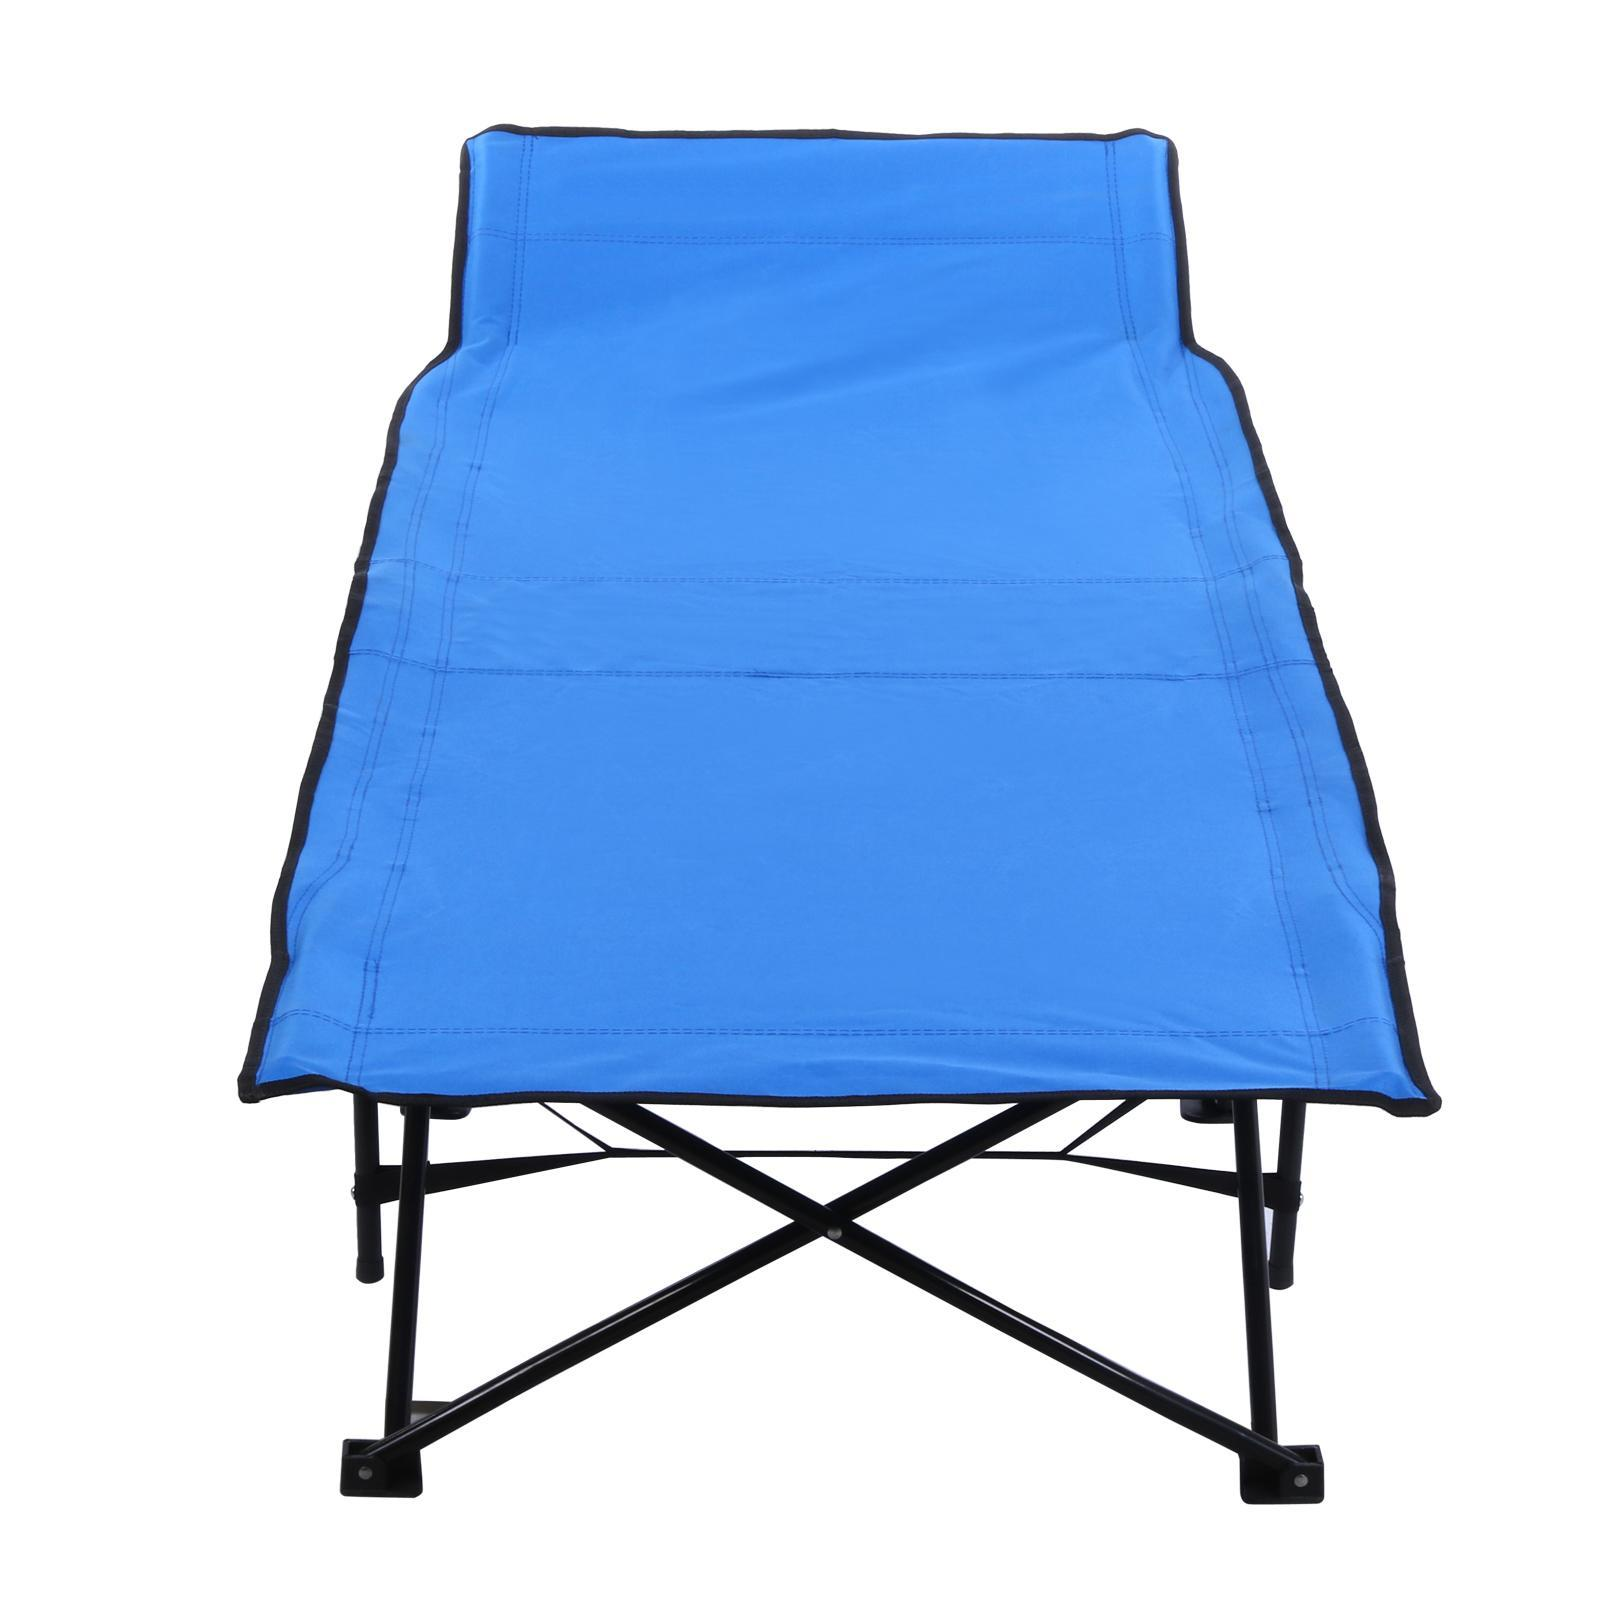 Folding Portable Sleeping Bed With Carry Bag 4